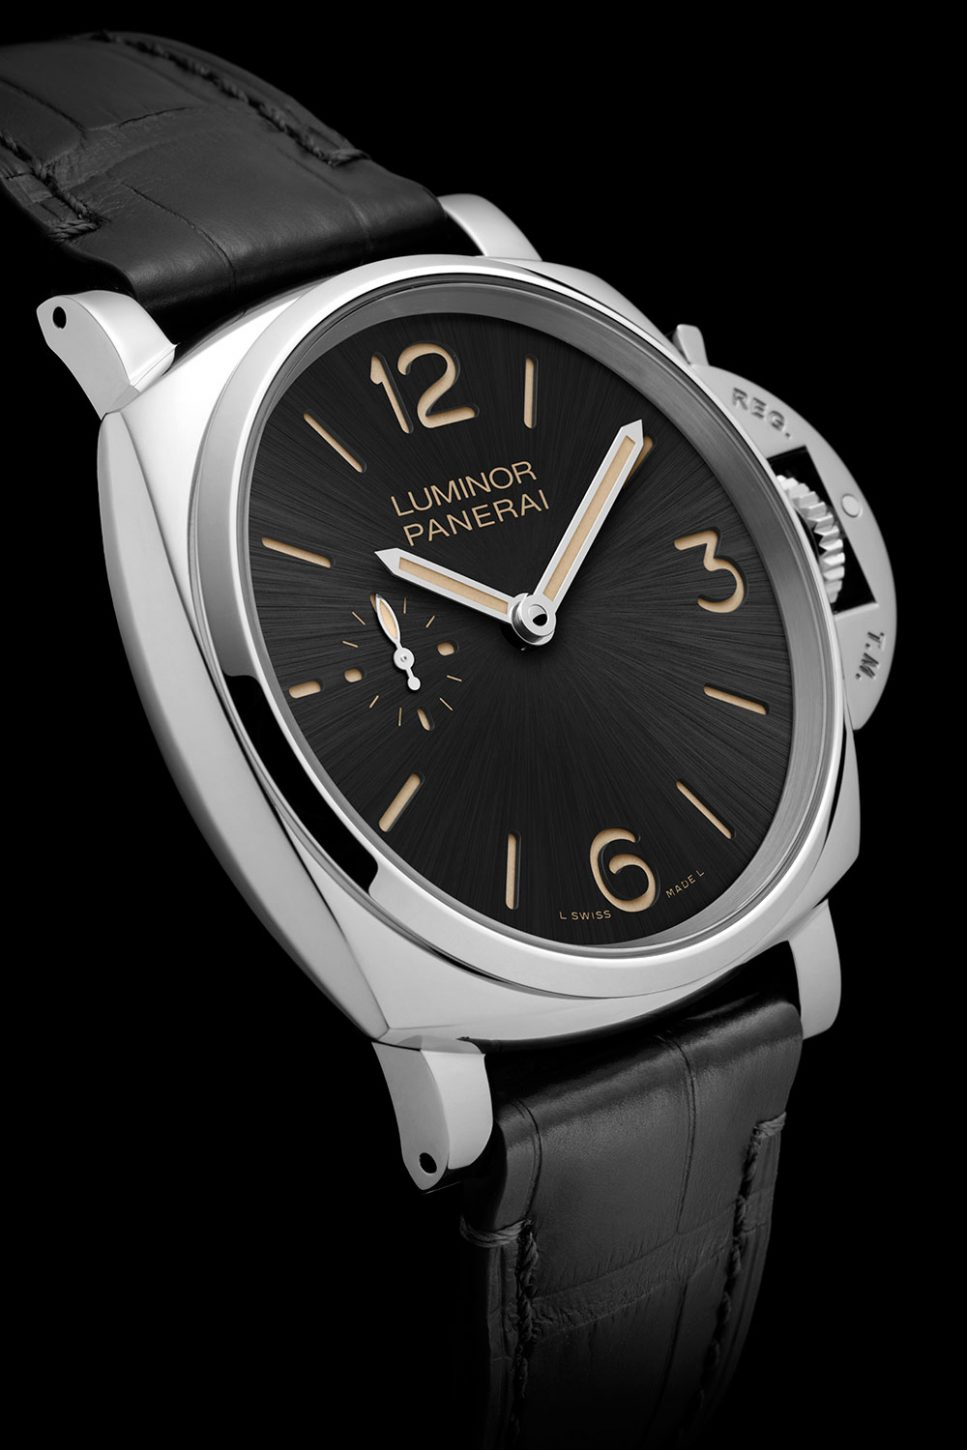 horlogerie-luxe-panerai-luminor-due-or-blanc-complication-tourbillon-2016-paris-capitale-magazine